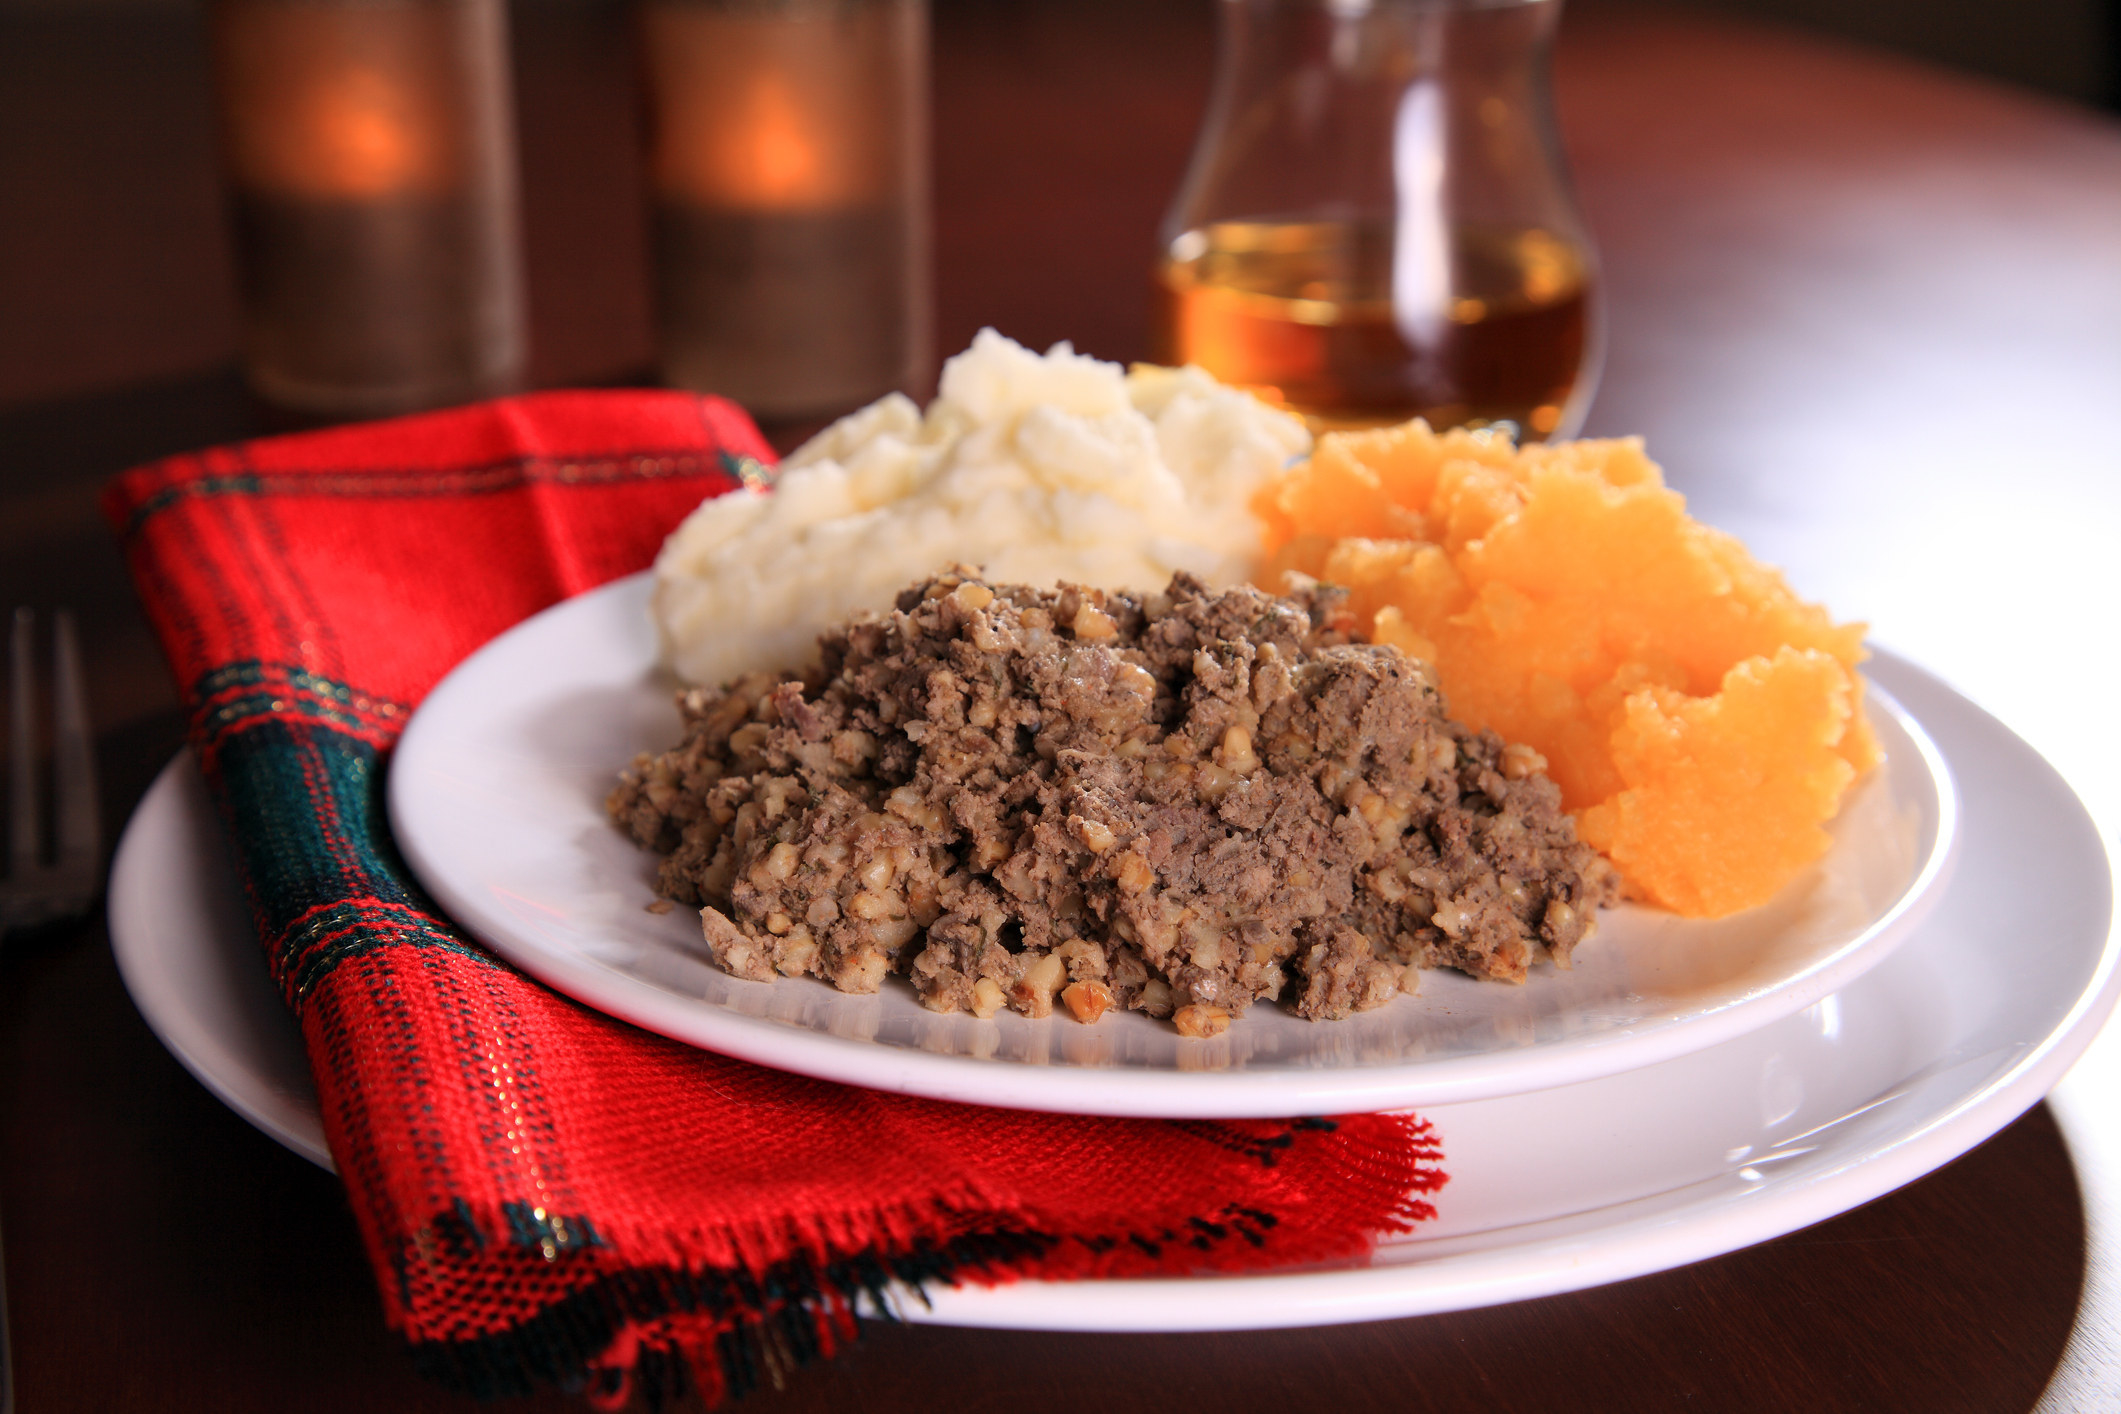 a plate of haggis with mashed potatoes and other mashed vegetables